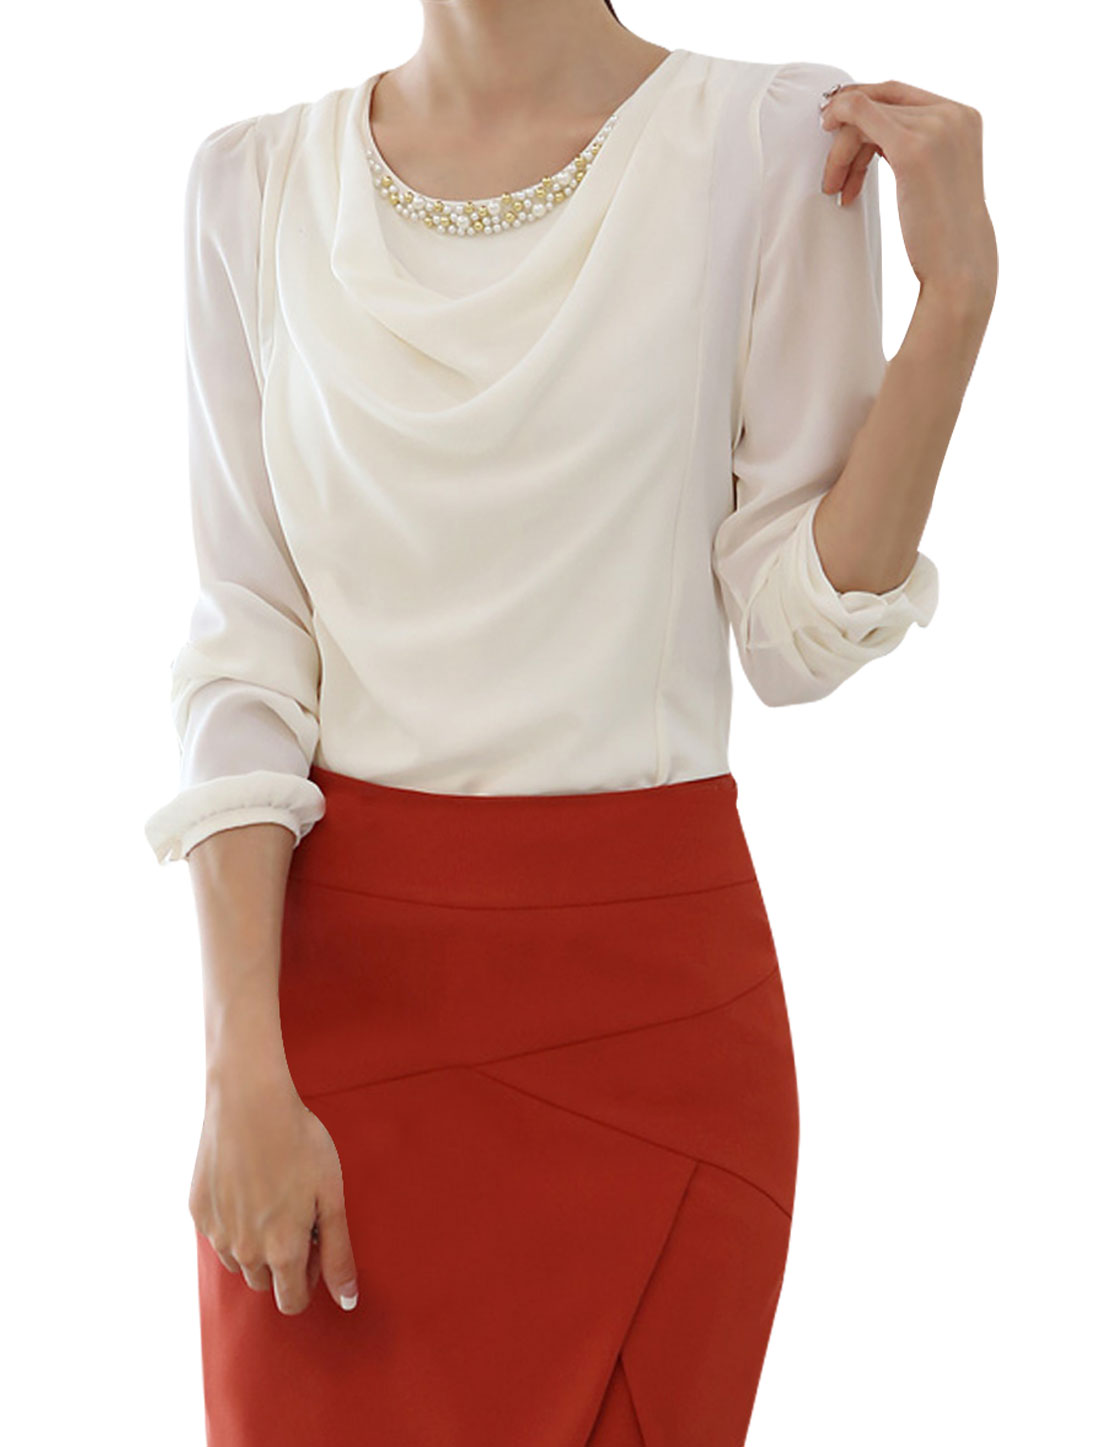 Woman Round Neck Long Sleeve Beaded Design White Top Shirt XS